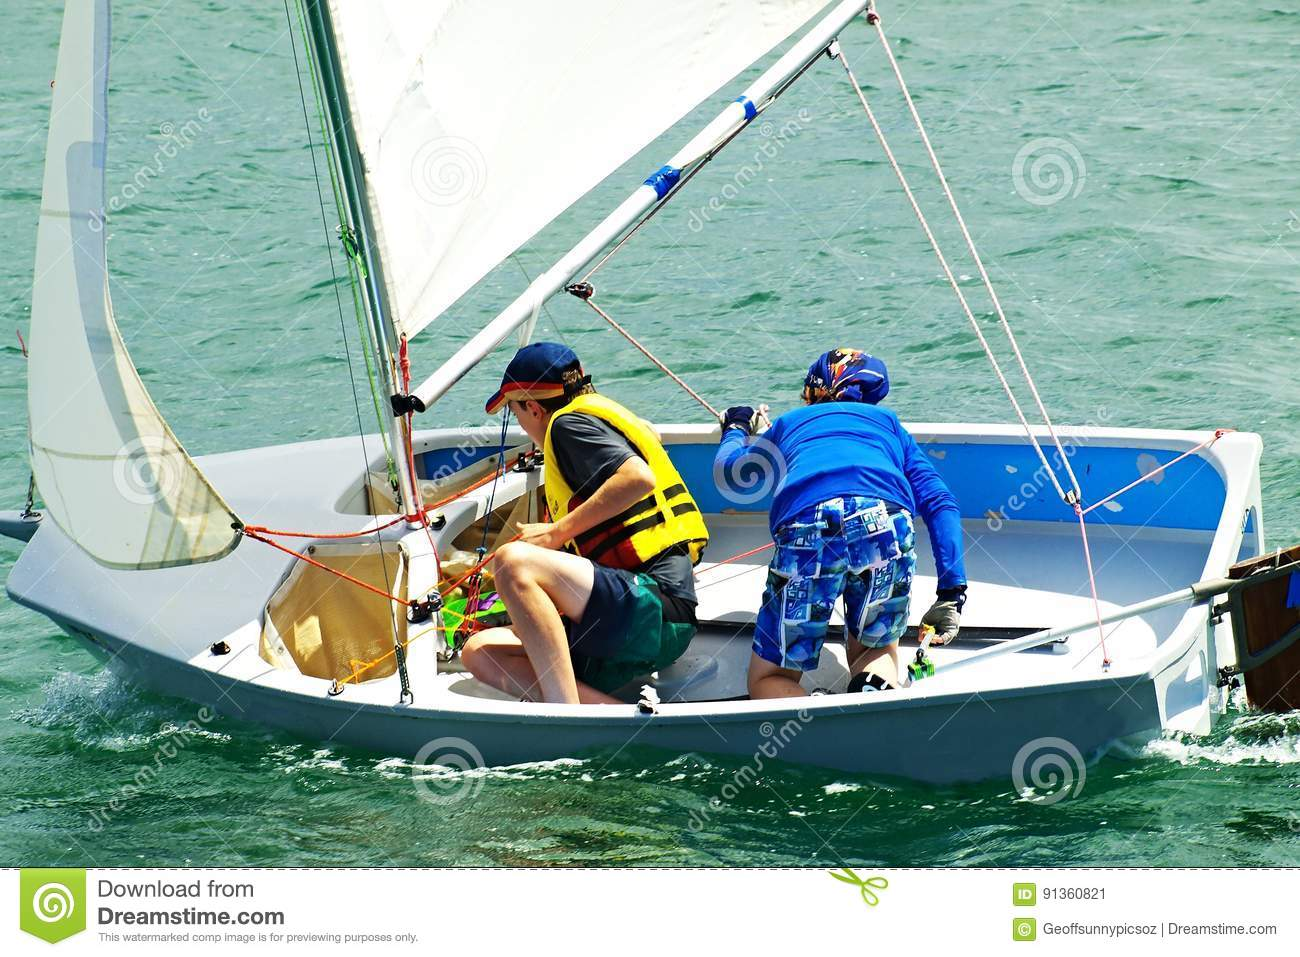 Children sailing boat pictures